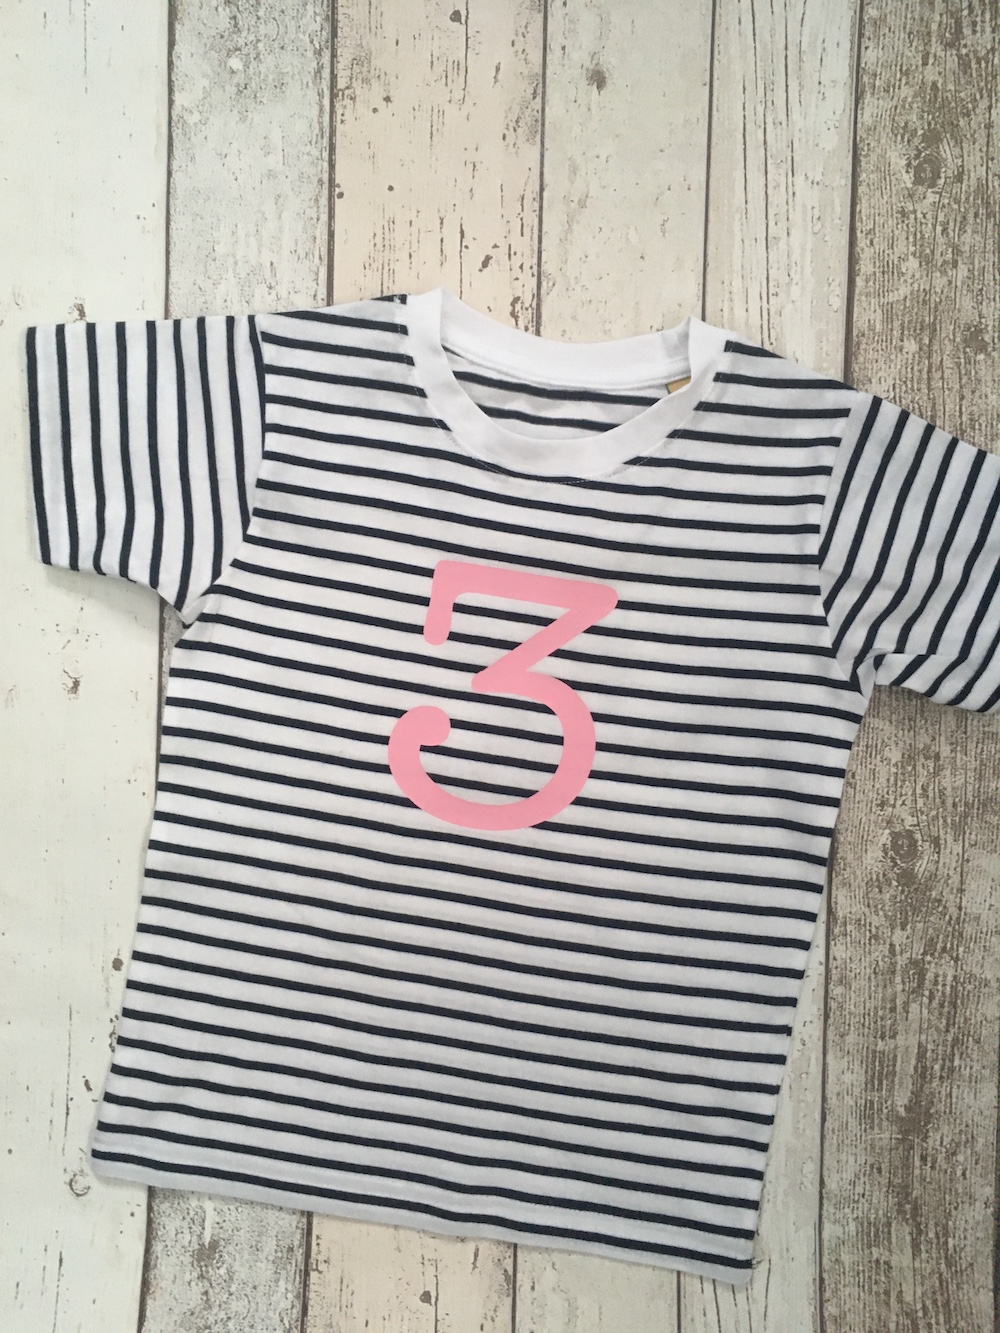 Number 3 Stripe Birthday T-shirt